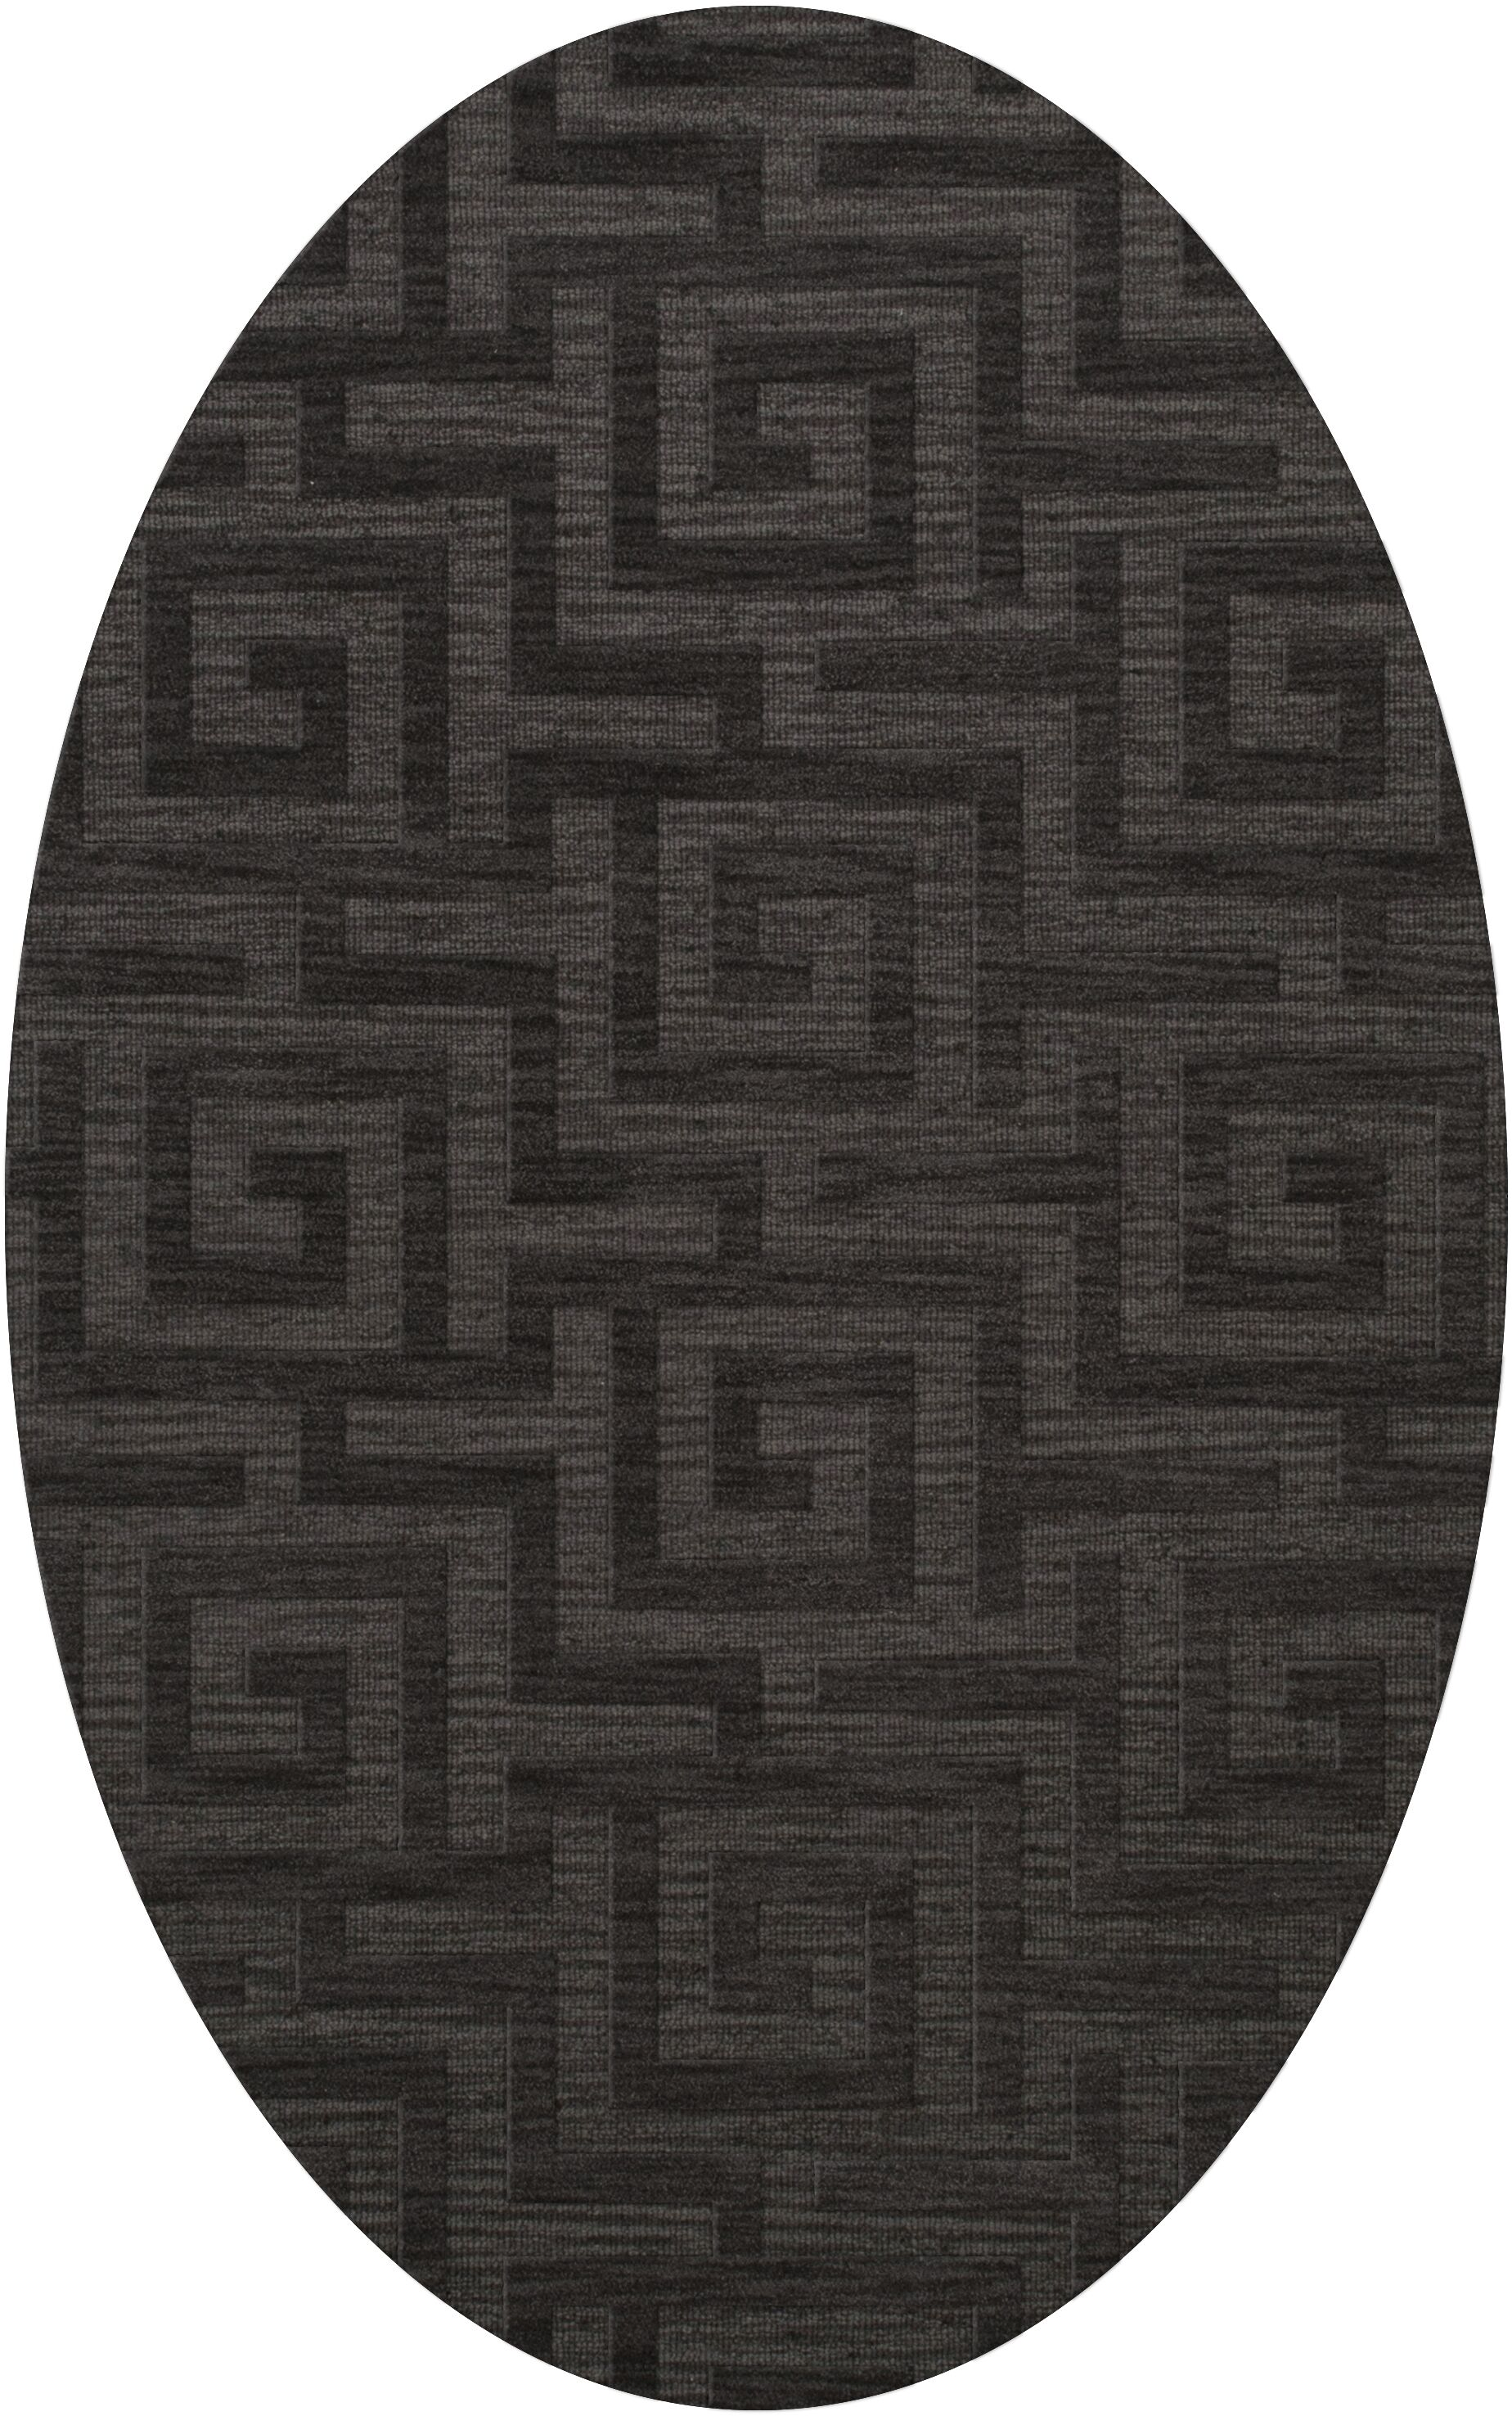 Features: -Construction: Custom made cut and loop.-Material: Wool.-Origin: U.S.A..-Collection: Dover.-Style: Contemporary.-Vacuum regularly.-Spot clean with mild soap and water.-Primary Color: Ash.-Primary Pattern: Geometric.-Rug Shape: .-Construction...